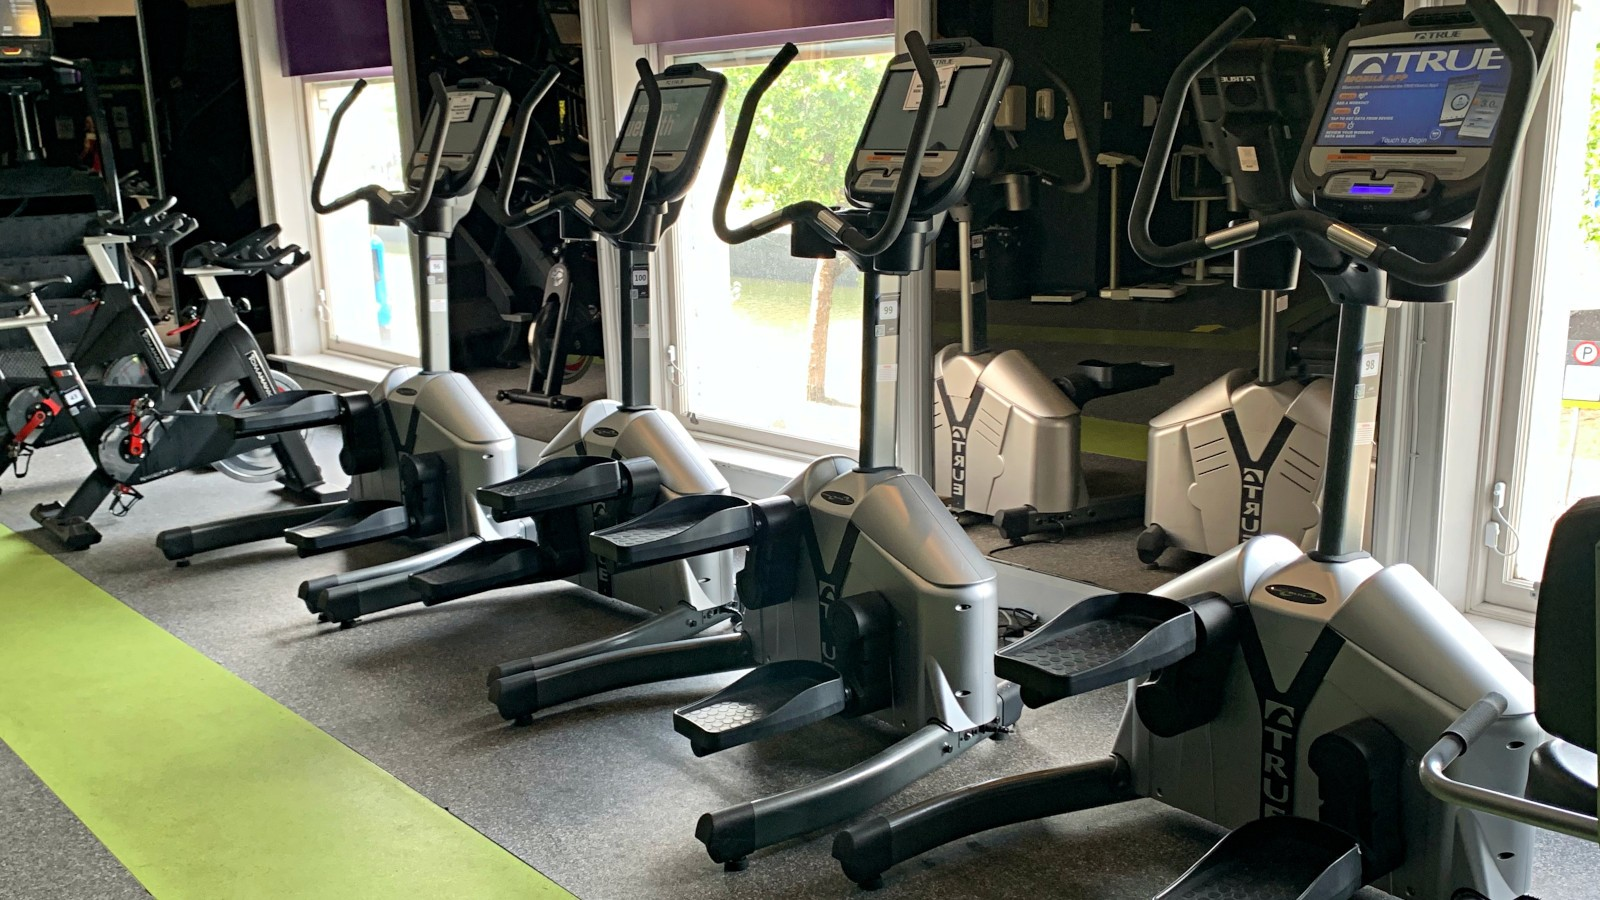 stepper machines on the gym floor